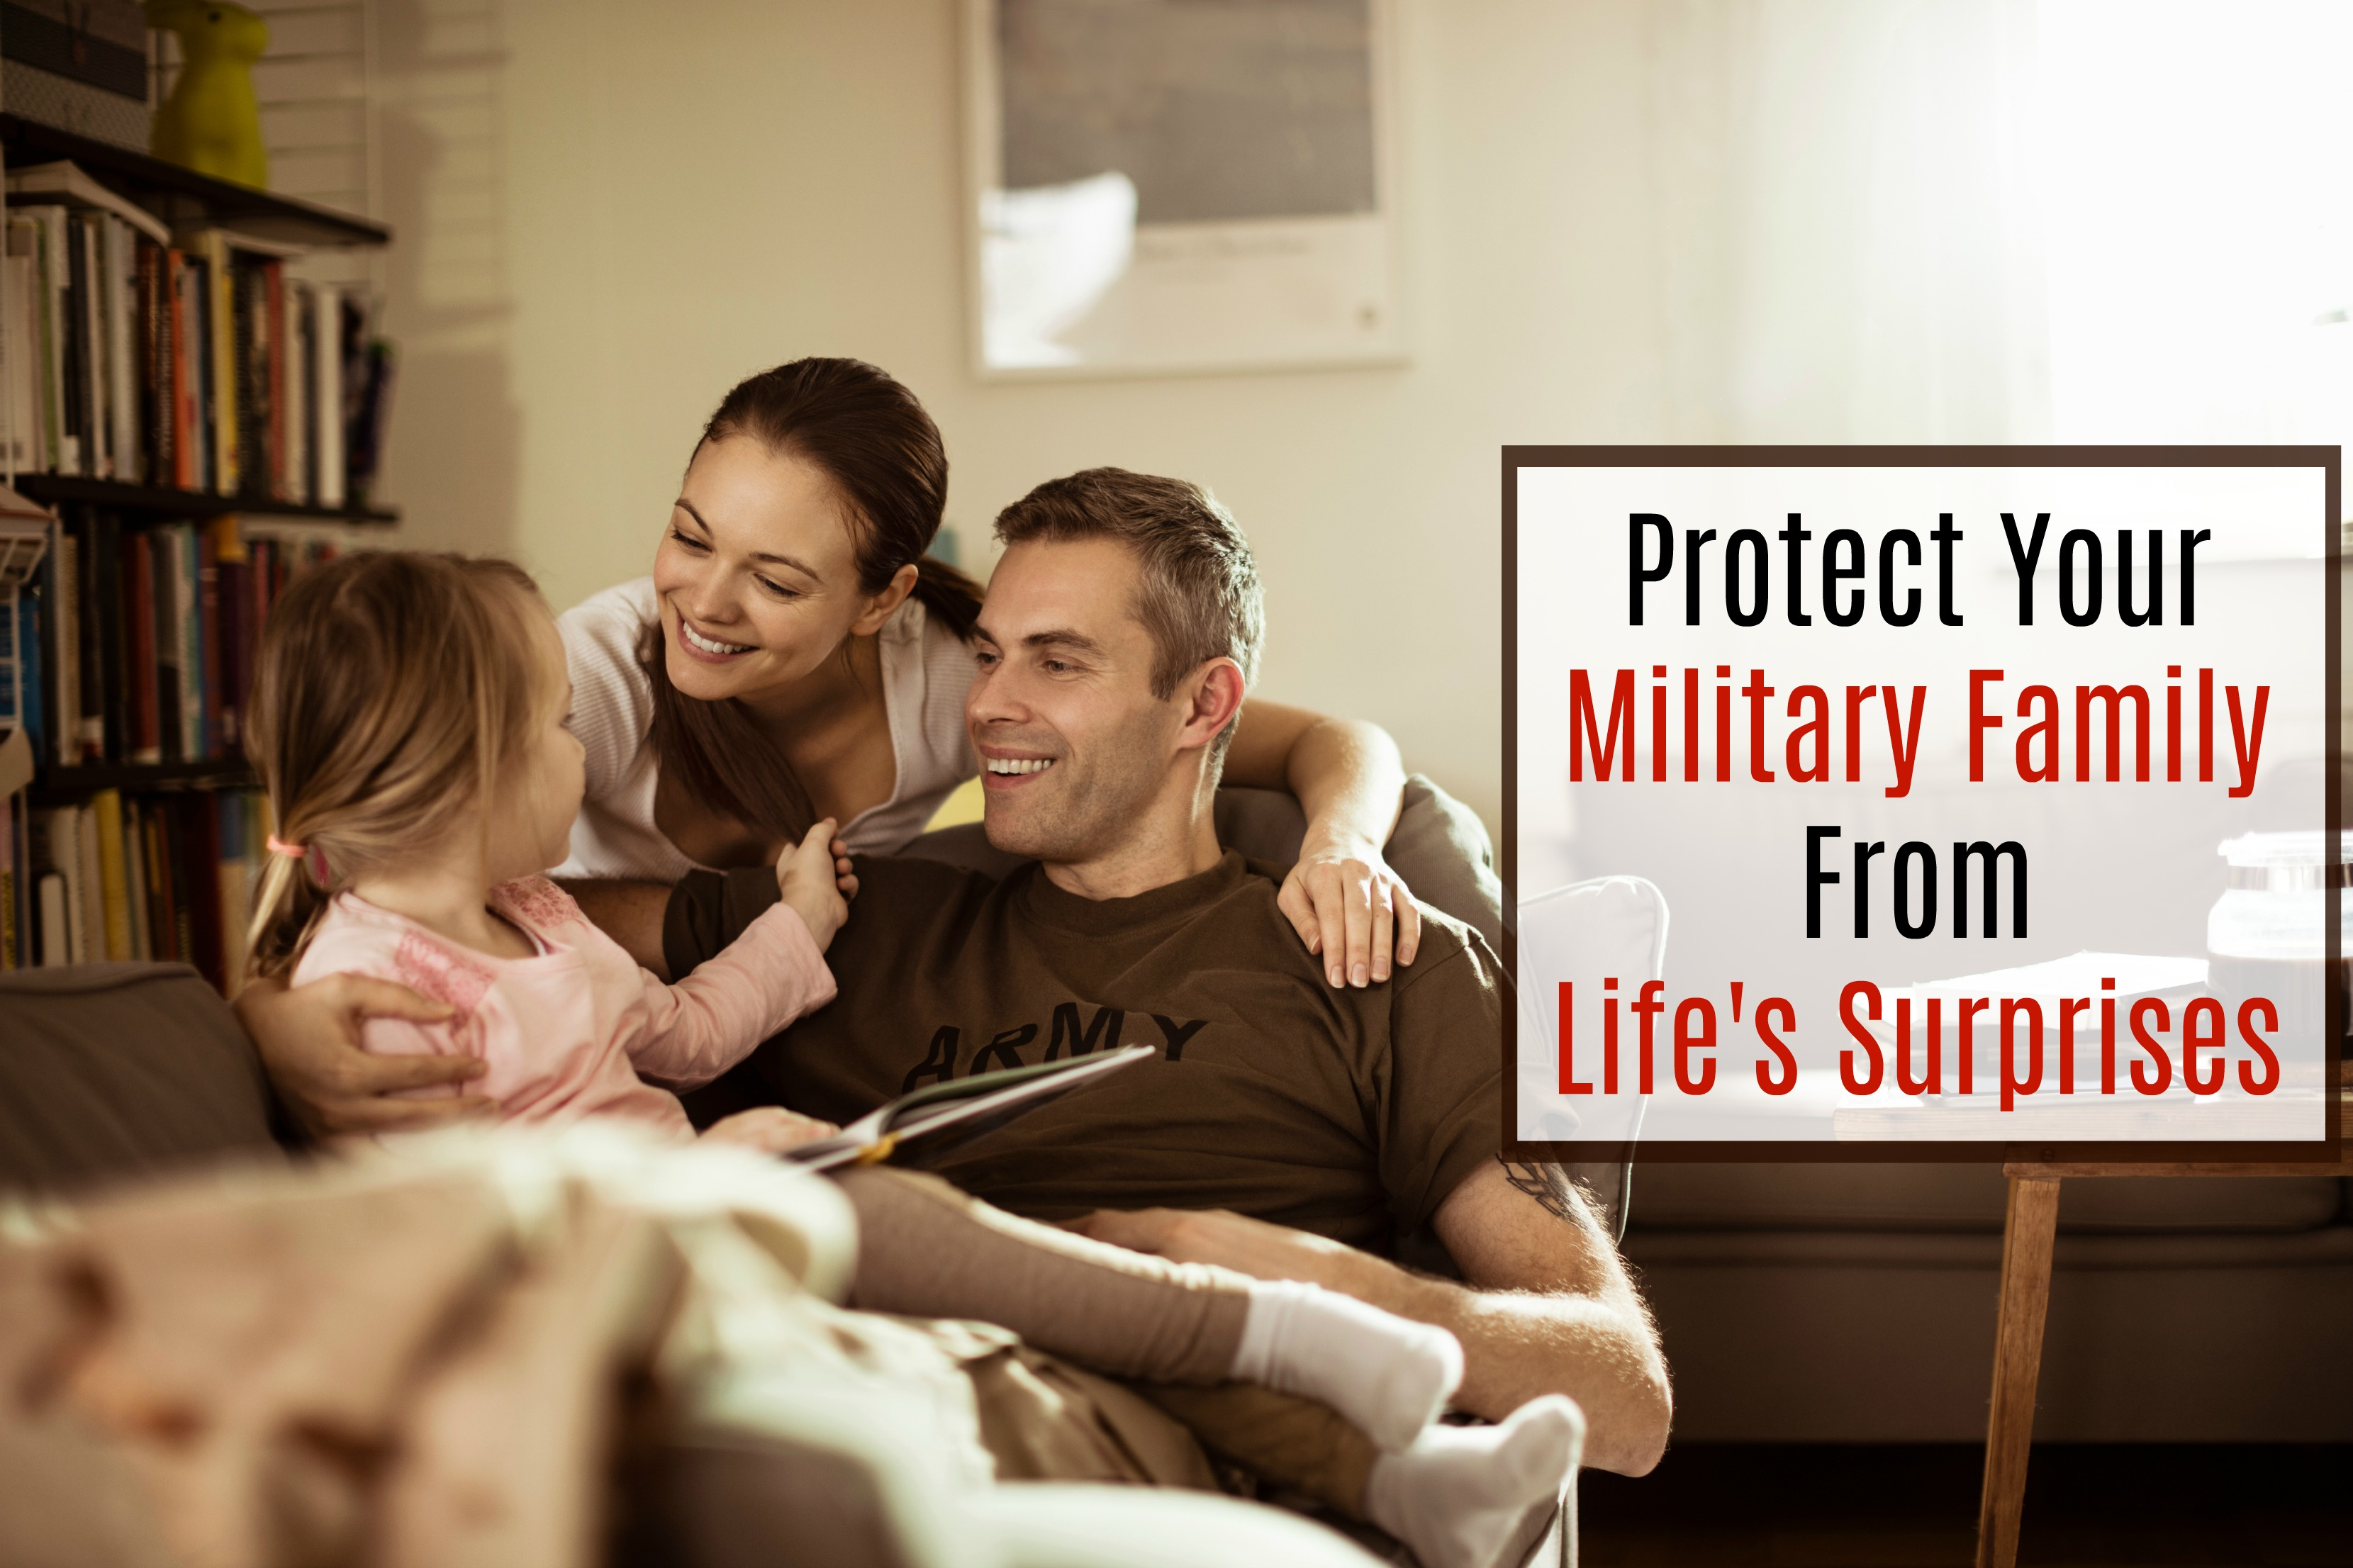 Protect Your Military Family from Life's Surprises